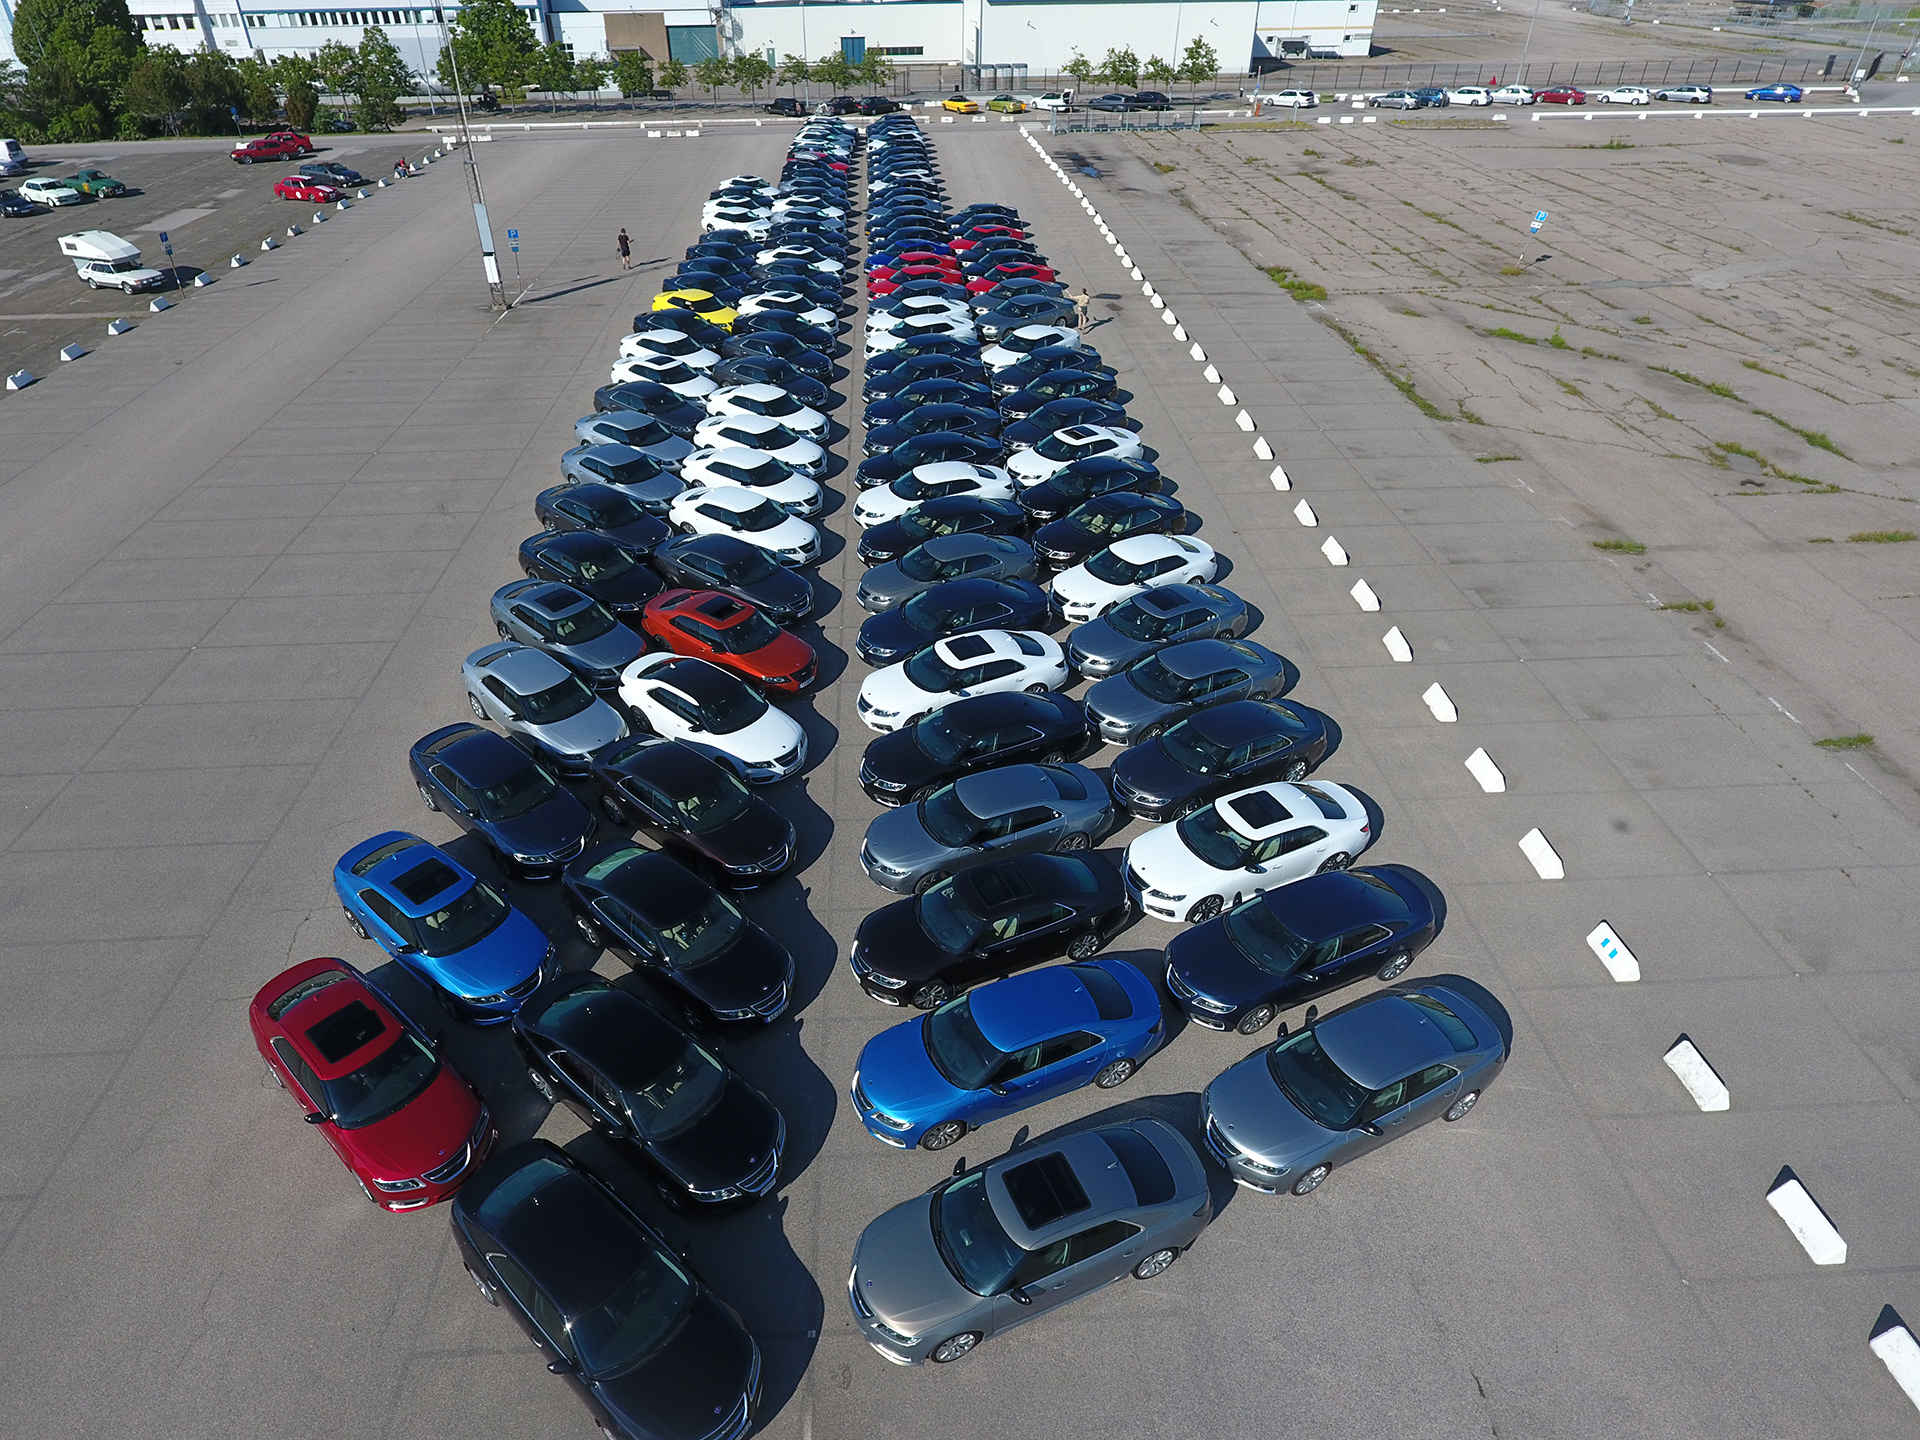 Saab cars lined up seen from above